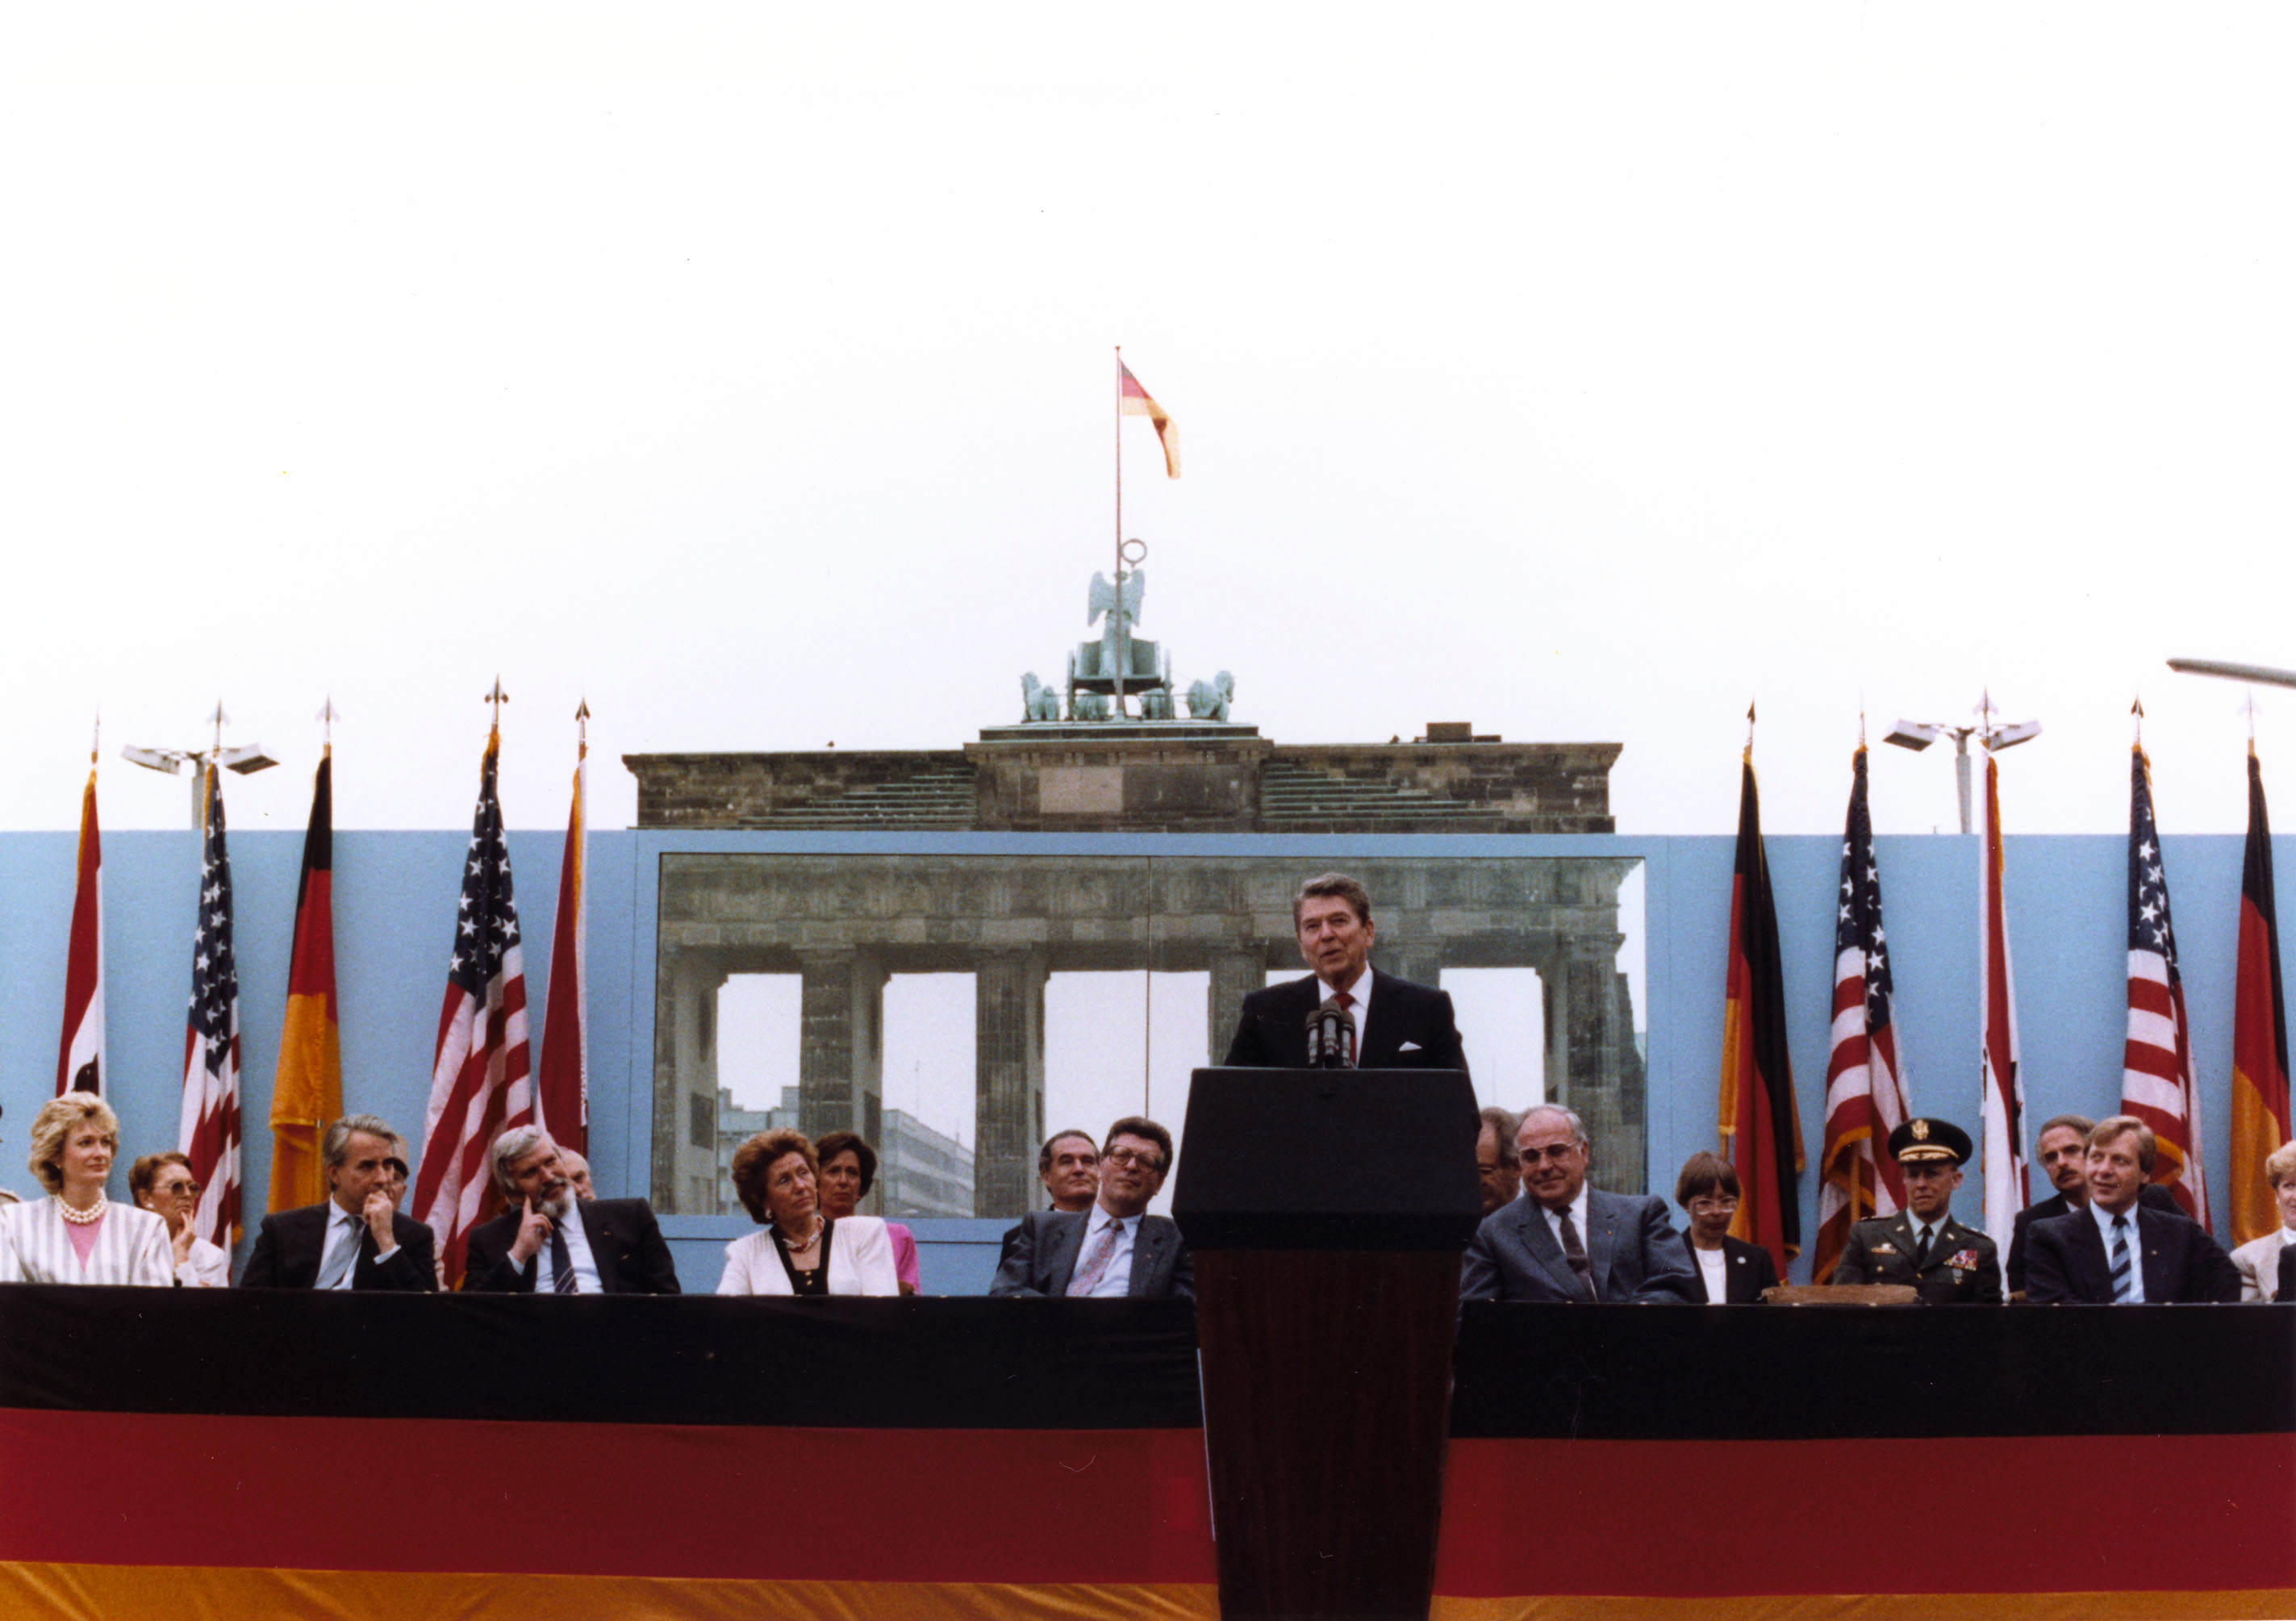 Ronald Reagan at the Brandenburg Gate challenges Soviet premier Mikhail Gorbachev to tear down the Berlin Wall on June 12, 1987, shortly before the end of the Cold War.